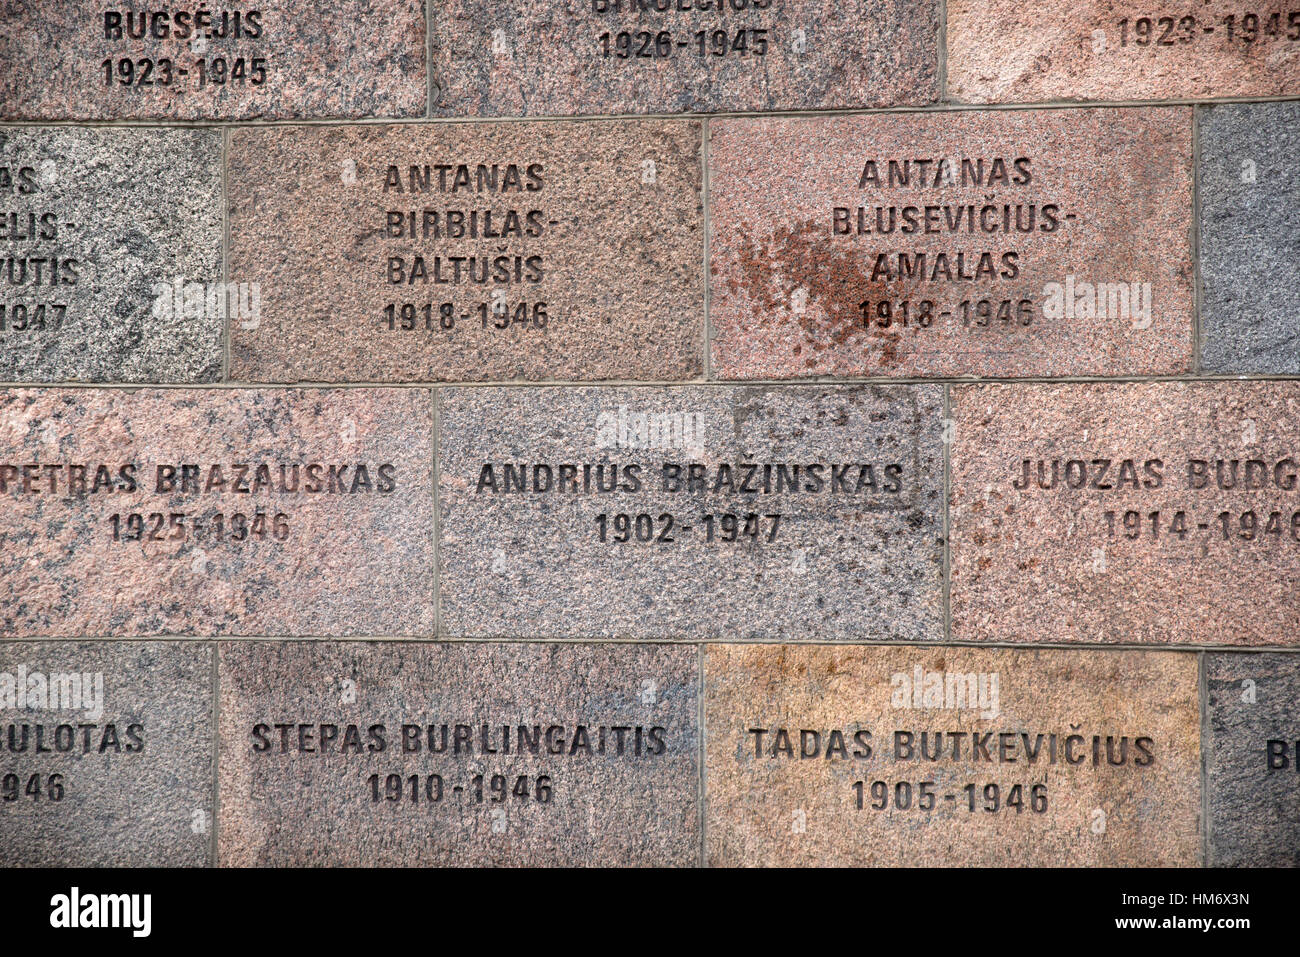 Memorial plaques on the Museum of Occupations and Freedom Fights (formerly Genocide Victims), Vilnius. Lithuania - Stock Image